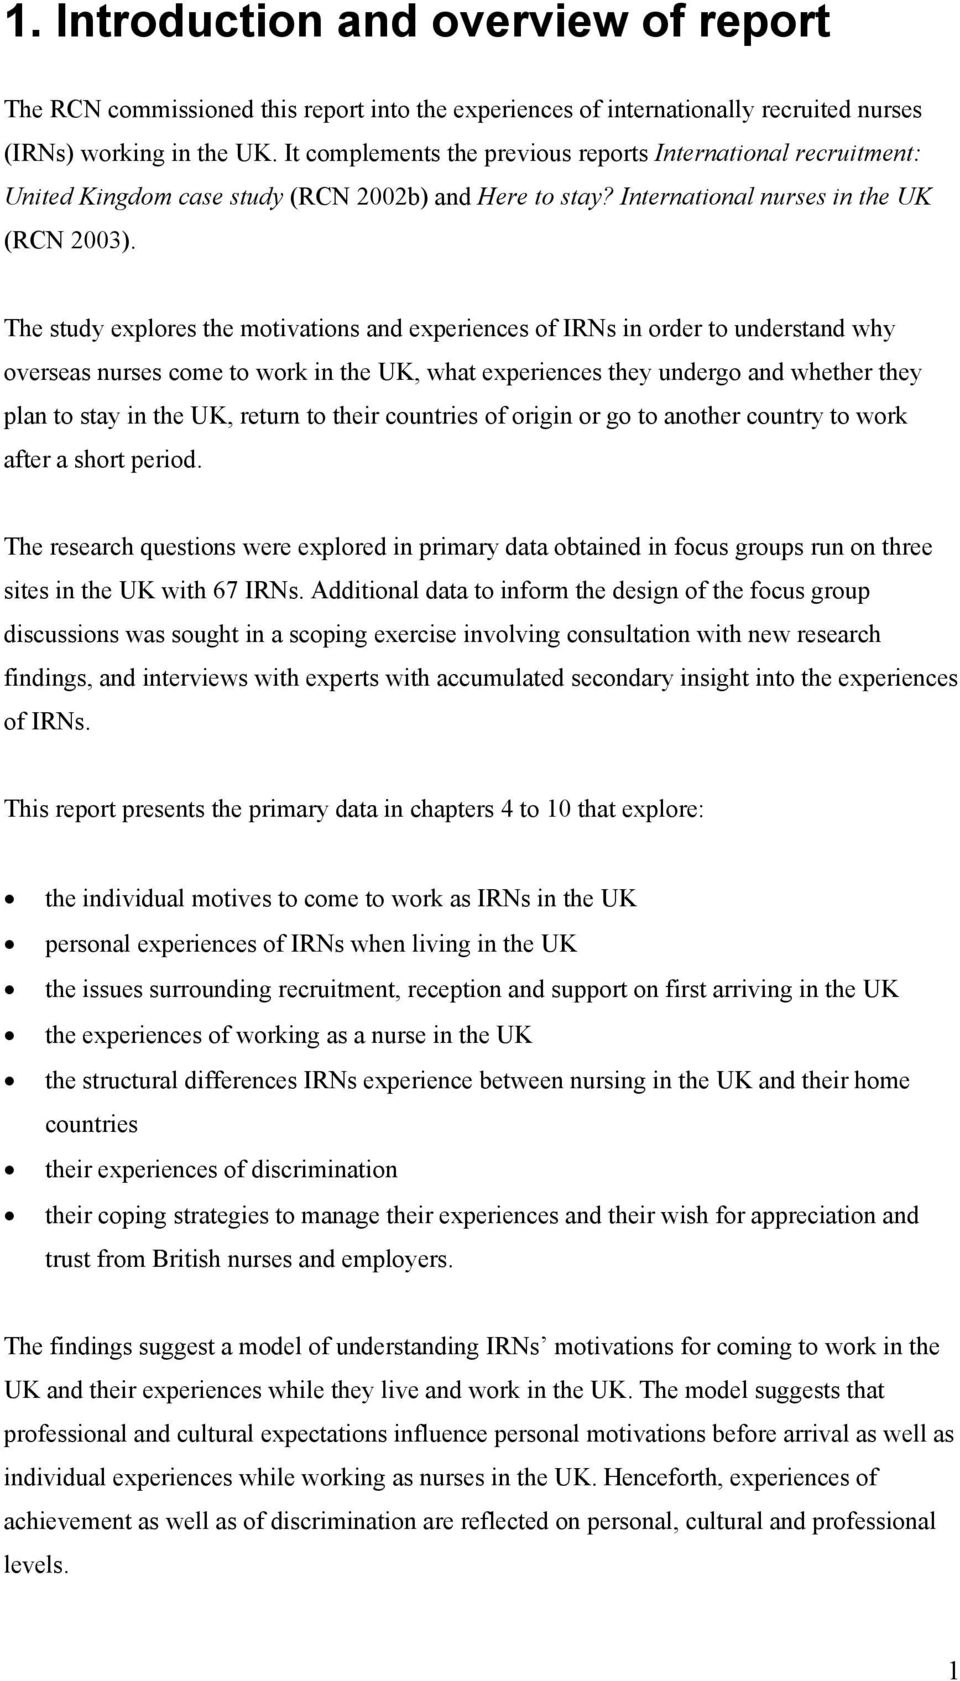 The study explores the motivations and experiences of IRNs in order to understand why overseas nurses come to work in the UK, what experiences they undergo and whether they plan to stay in the UK,